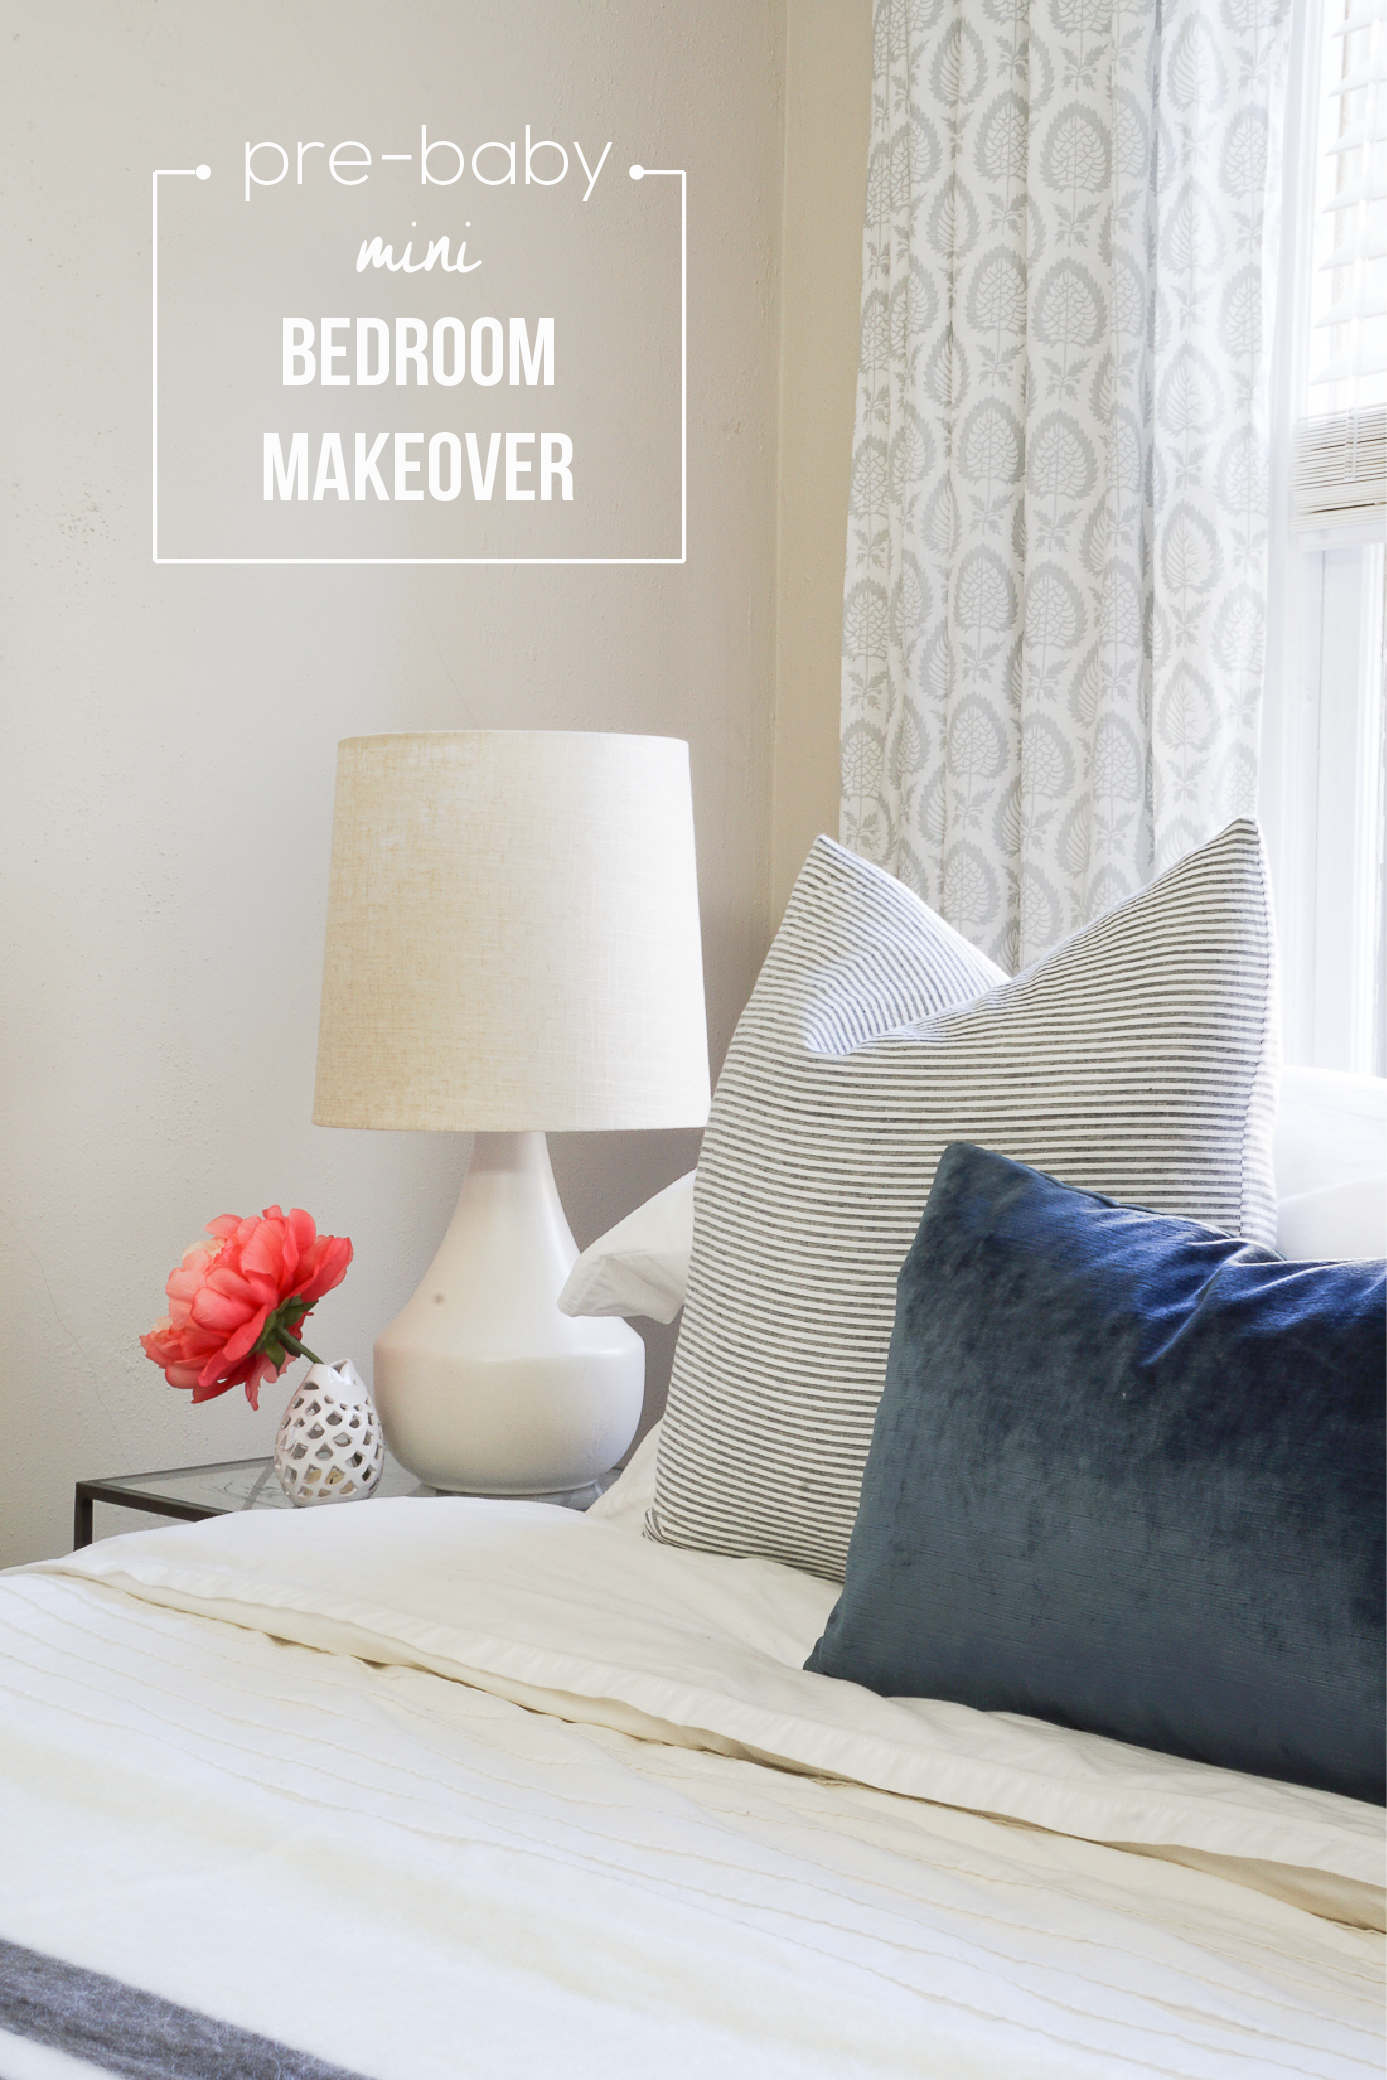 We need all the sleep we can get before this b b  arrives  A Mini Bedroom  Makeover  see how. Our  Pre Baby  Mini Bedroom Makeover   Francois et Moi